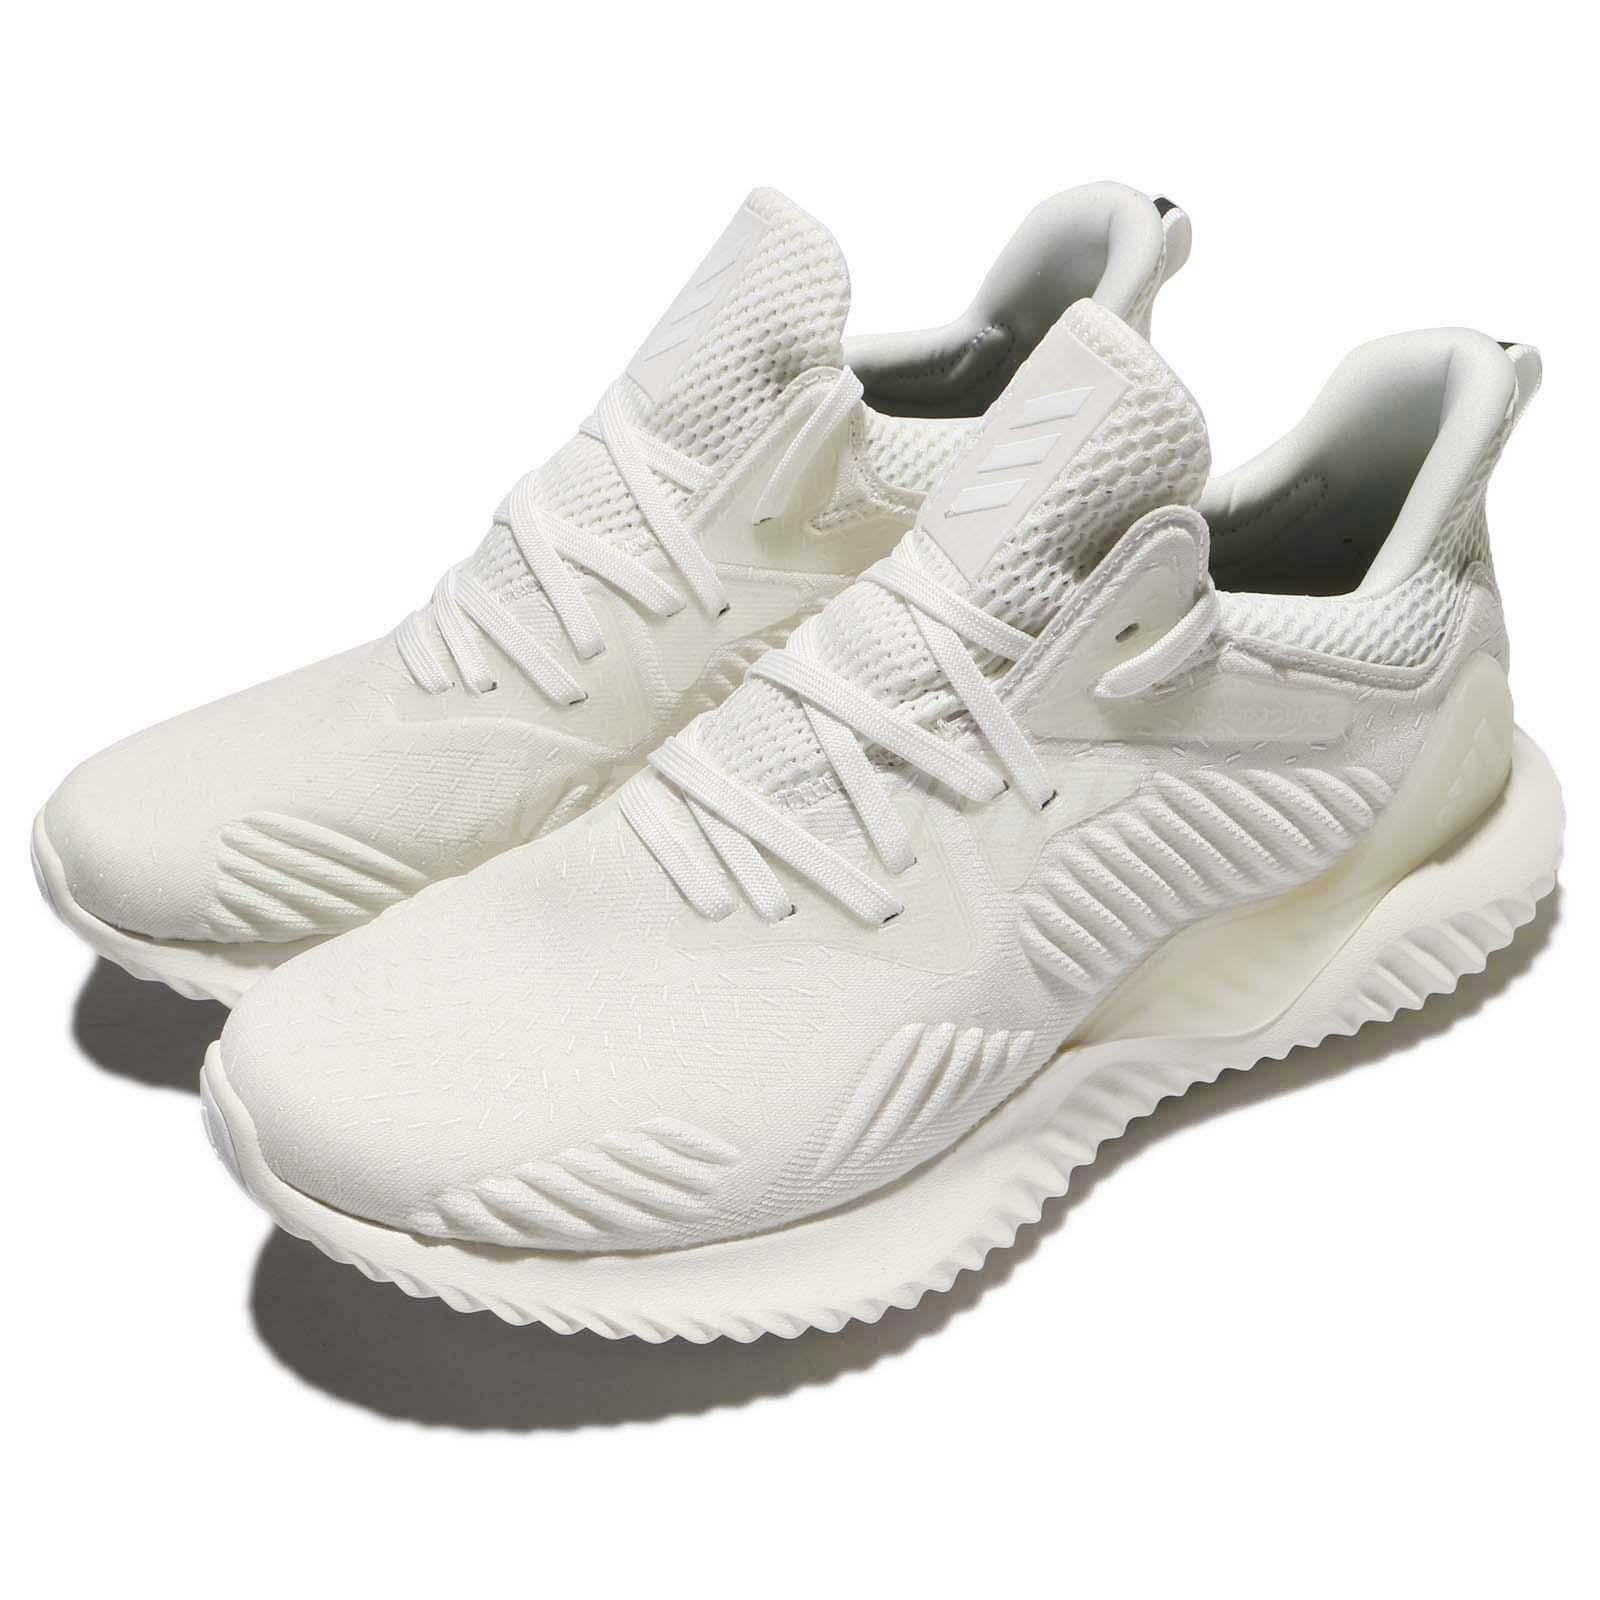 Adidas Alphabounce Beyond M Non Dyed White Men Running shoes Sneakers DB1125